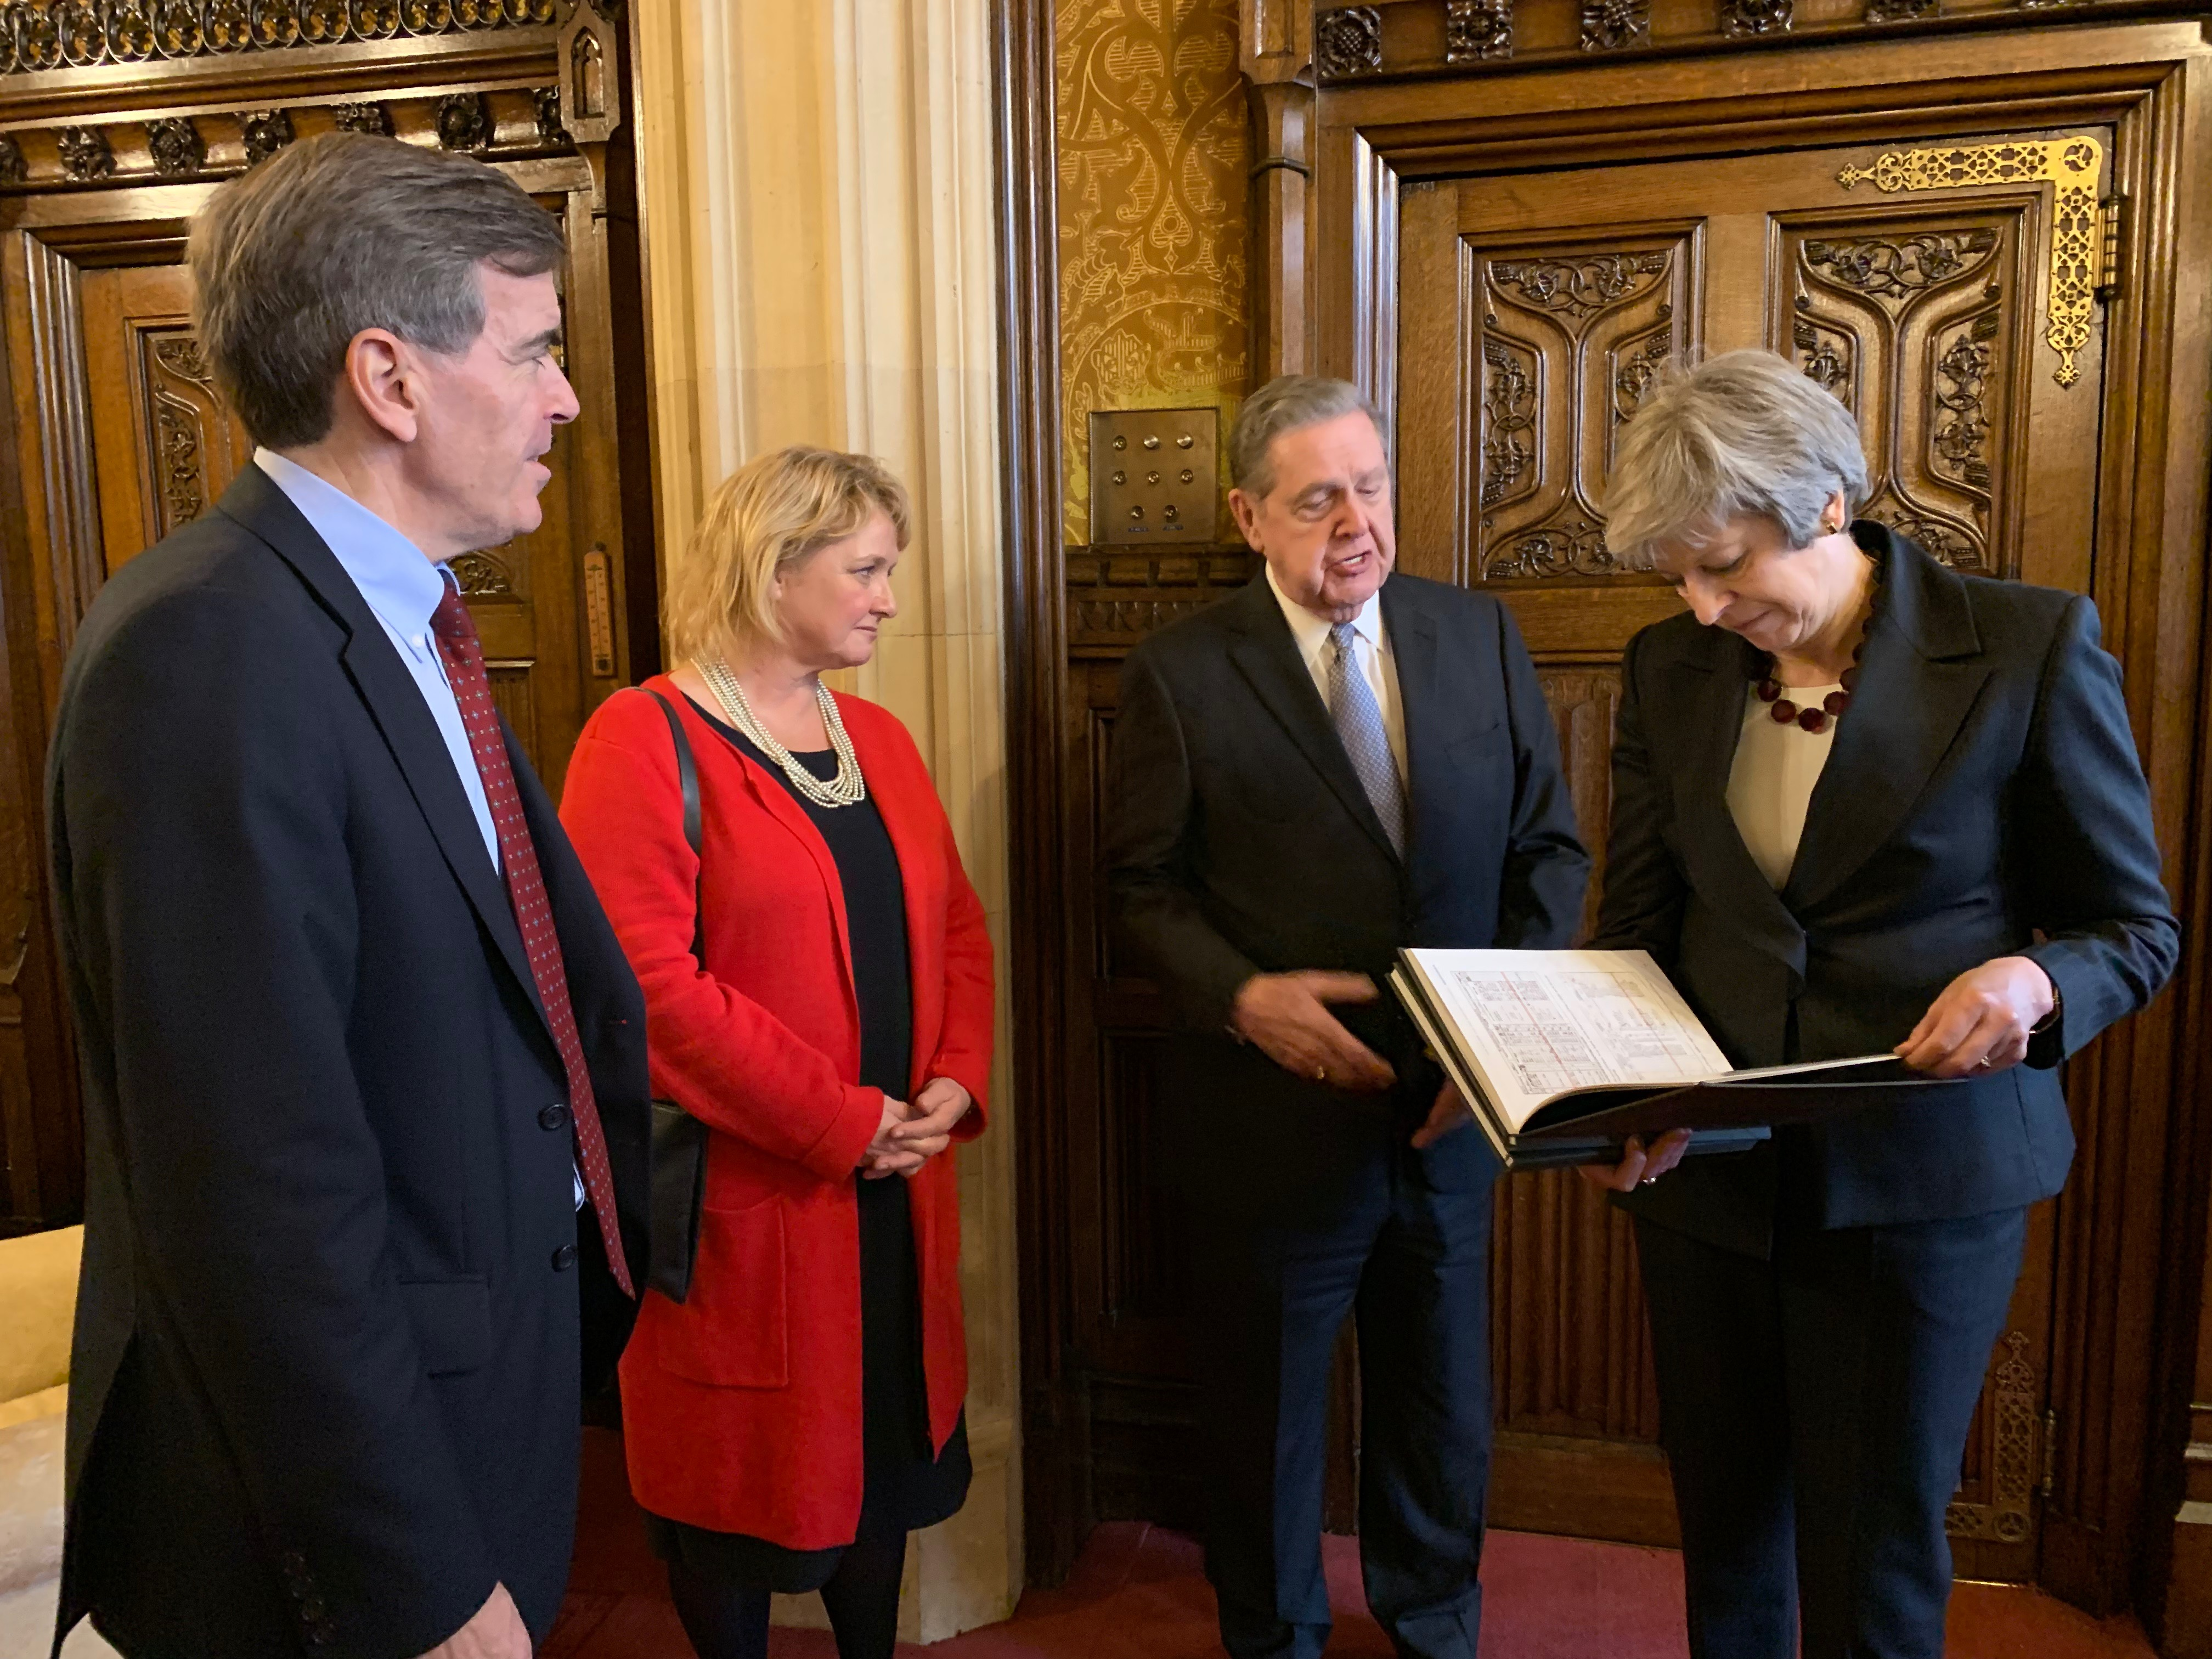 Elder Jeffrey R. Holland of the Quorum of the Twelve Apostles shows British Prime Minister Theresa May a bound copy of her family history records, including photographs of census and marriage records, as David Rutley, a member of Parliament, and Yvonne Kerr, wife of Stephen Kerr, a member of Parliament, look on at the Palace of Westminster on Wednesday, Nov. 21, 2018.